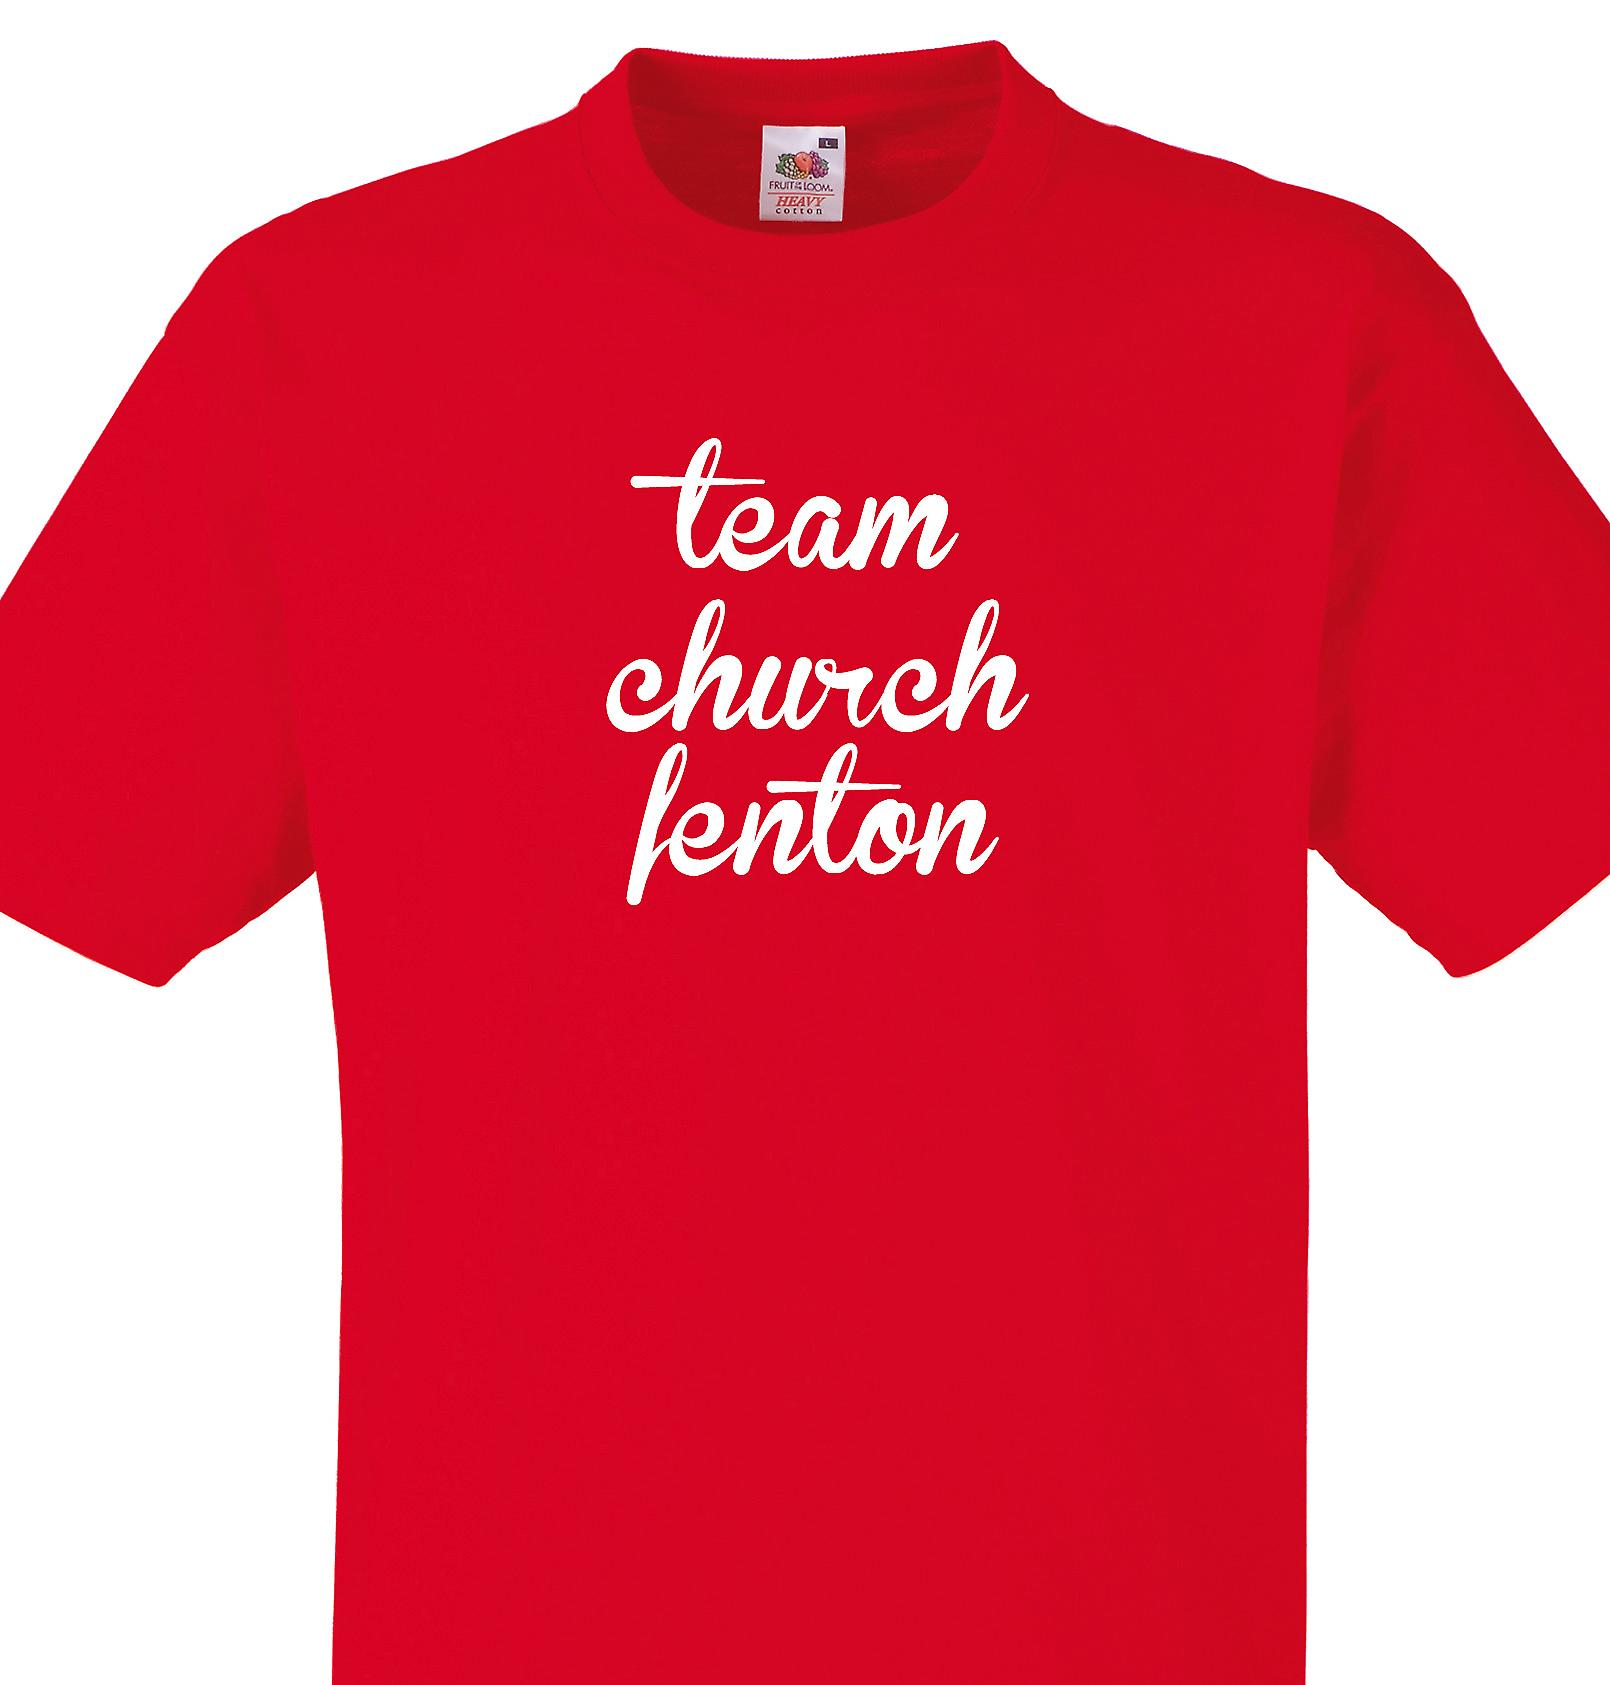 Team Church fenton Red T shirt